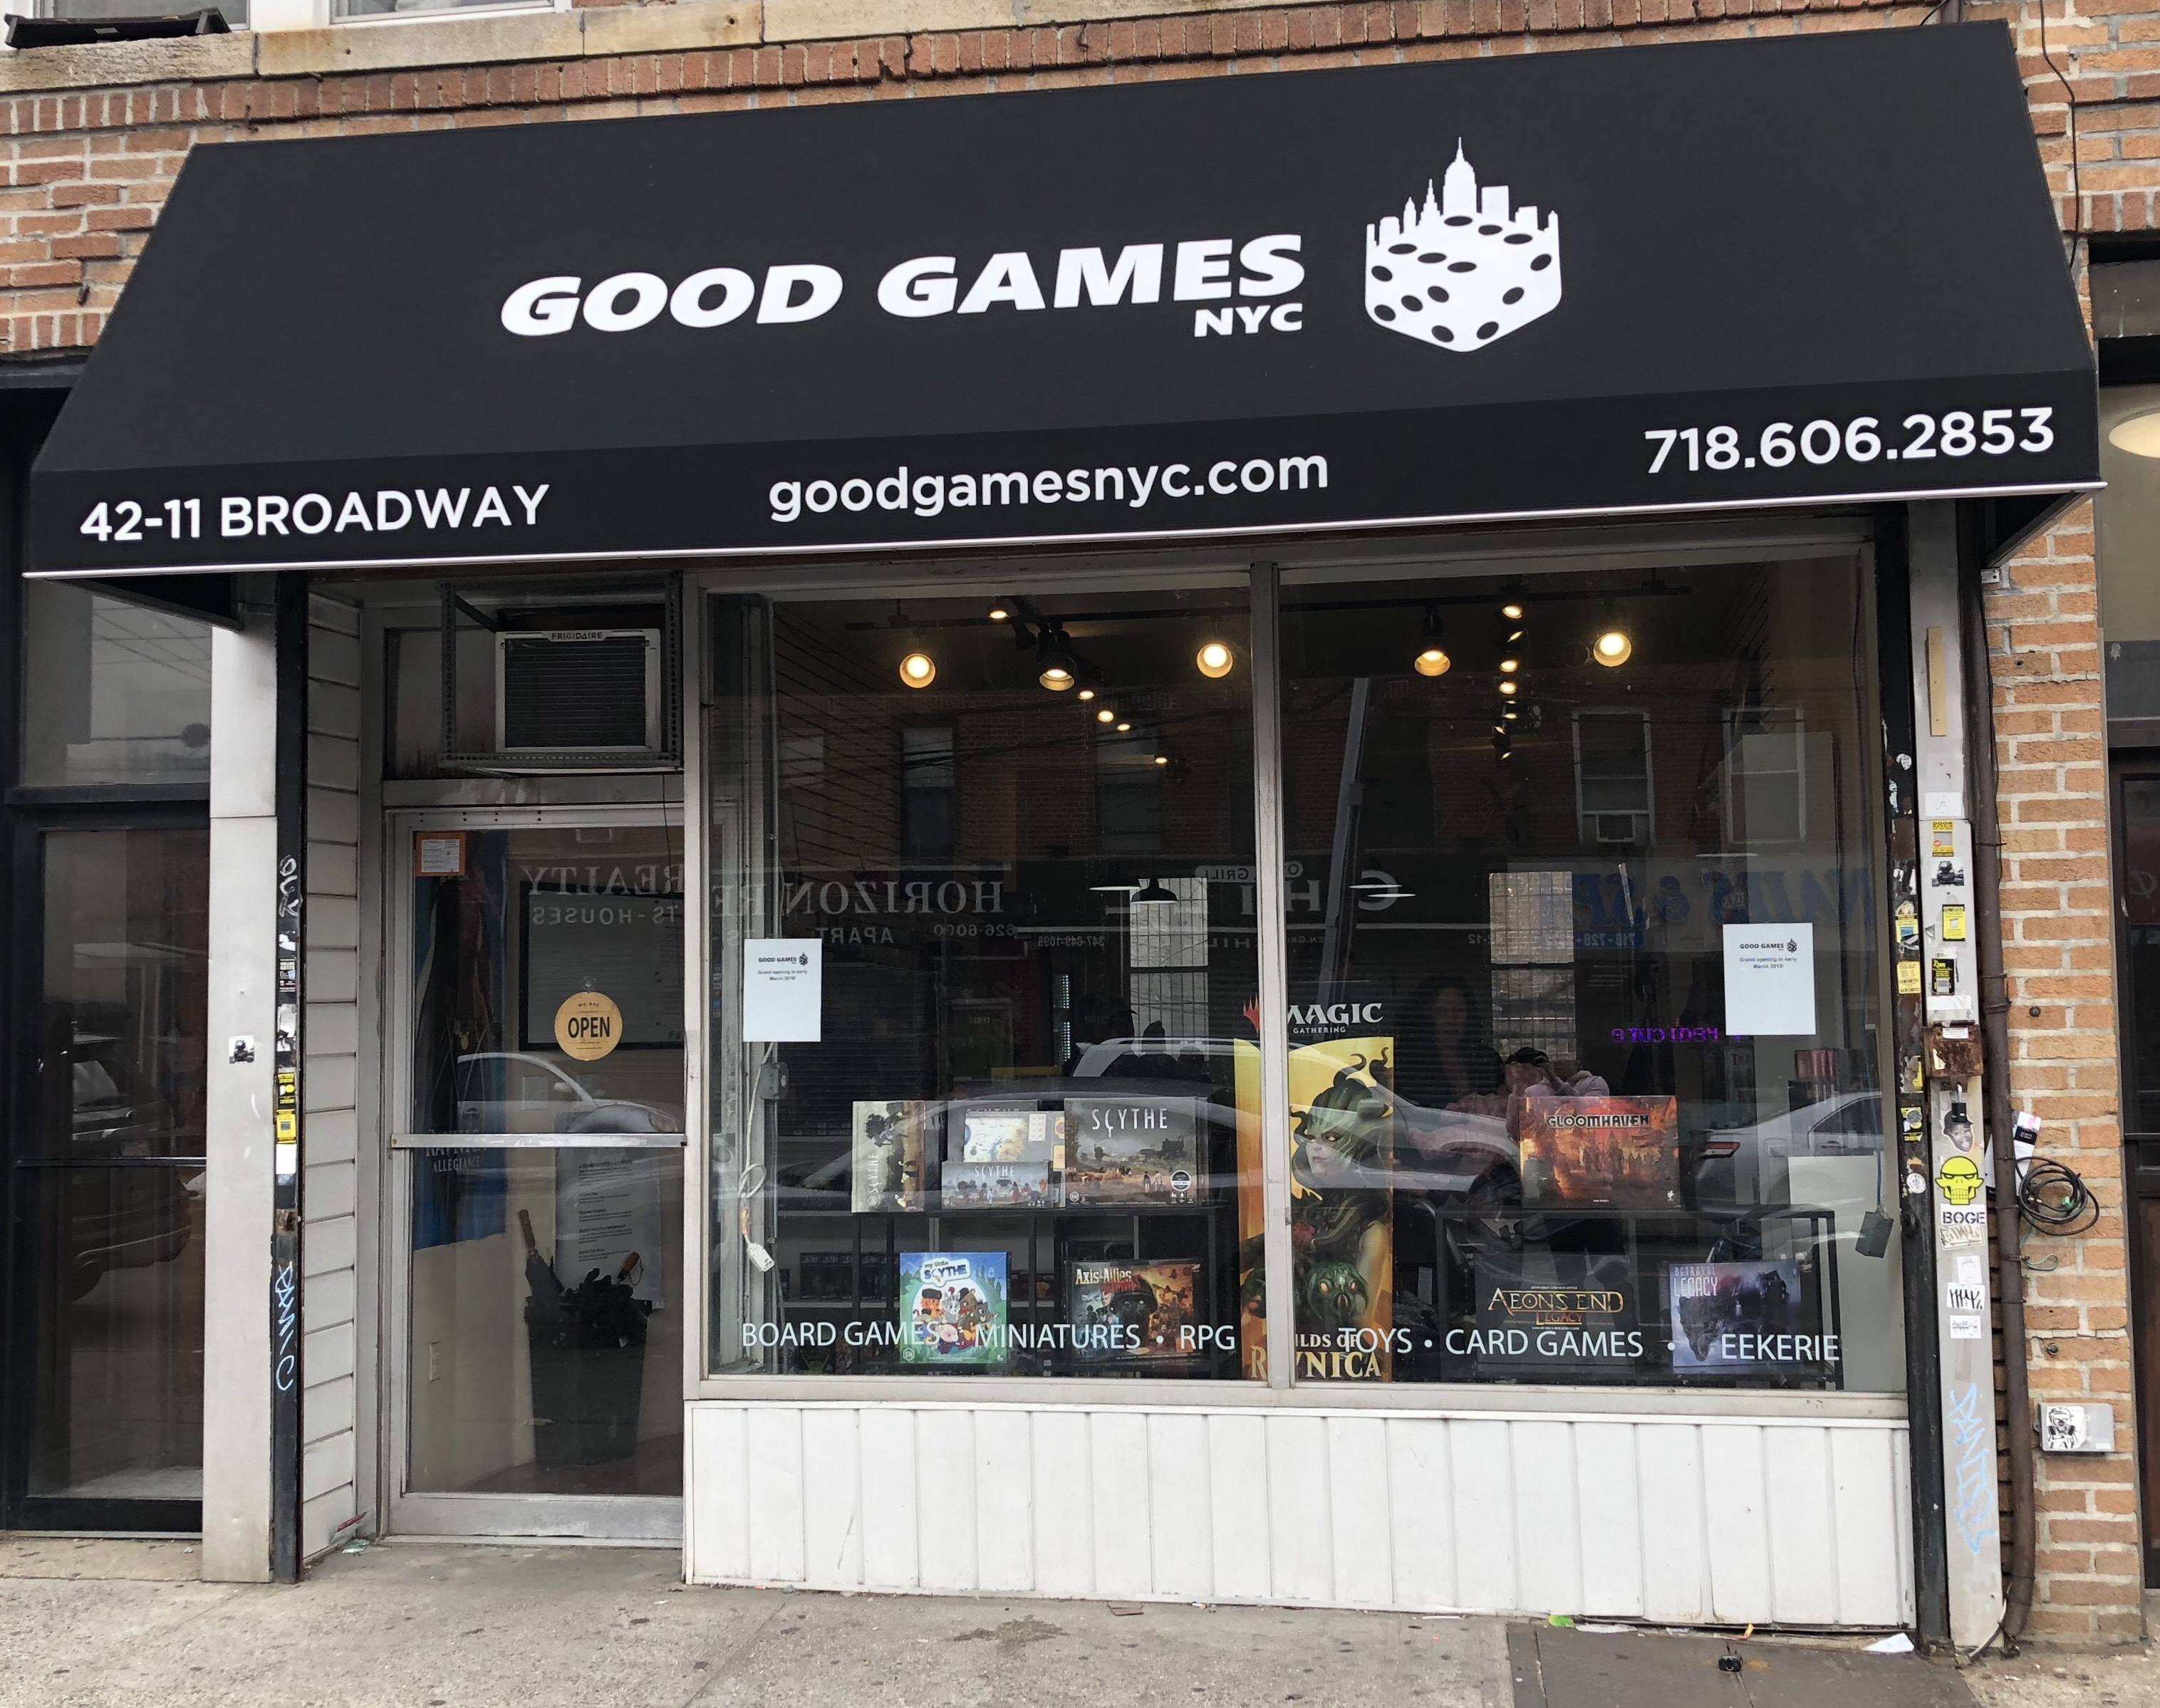 Good Games NYC